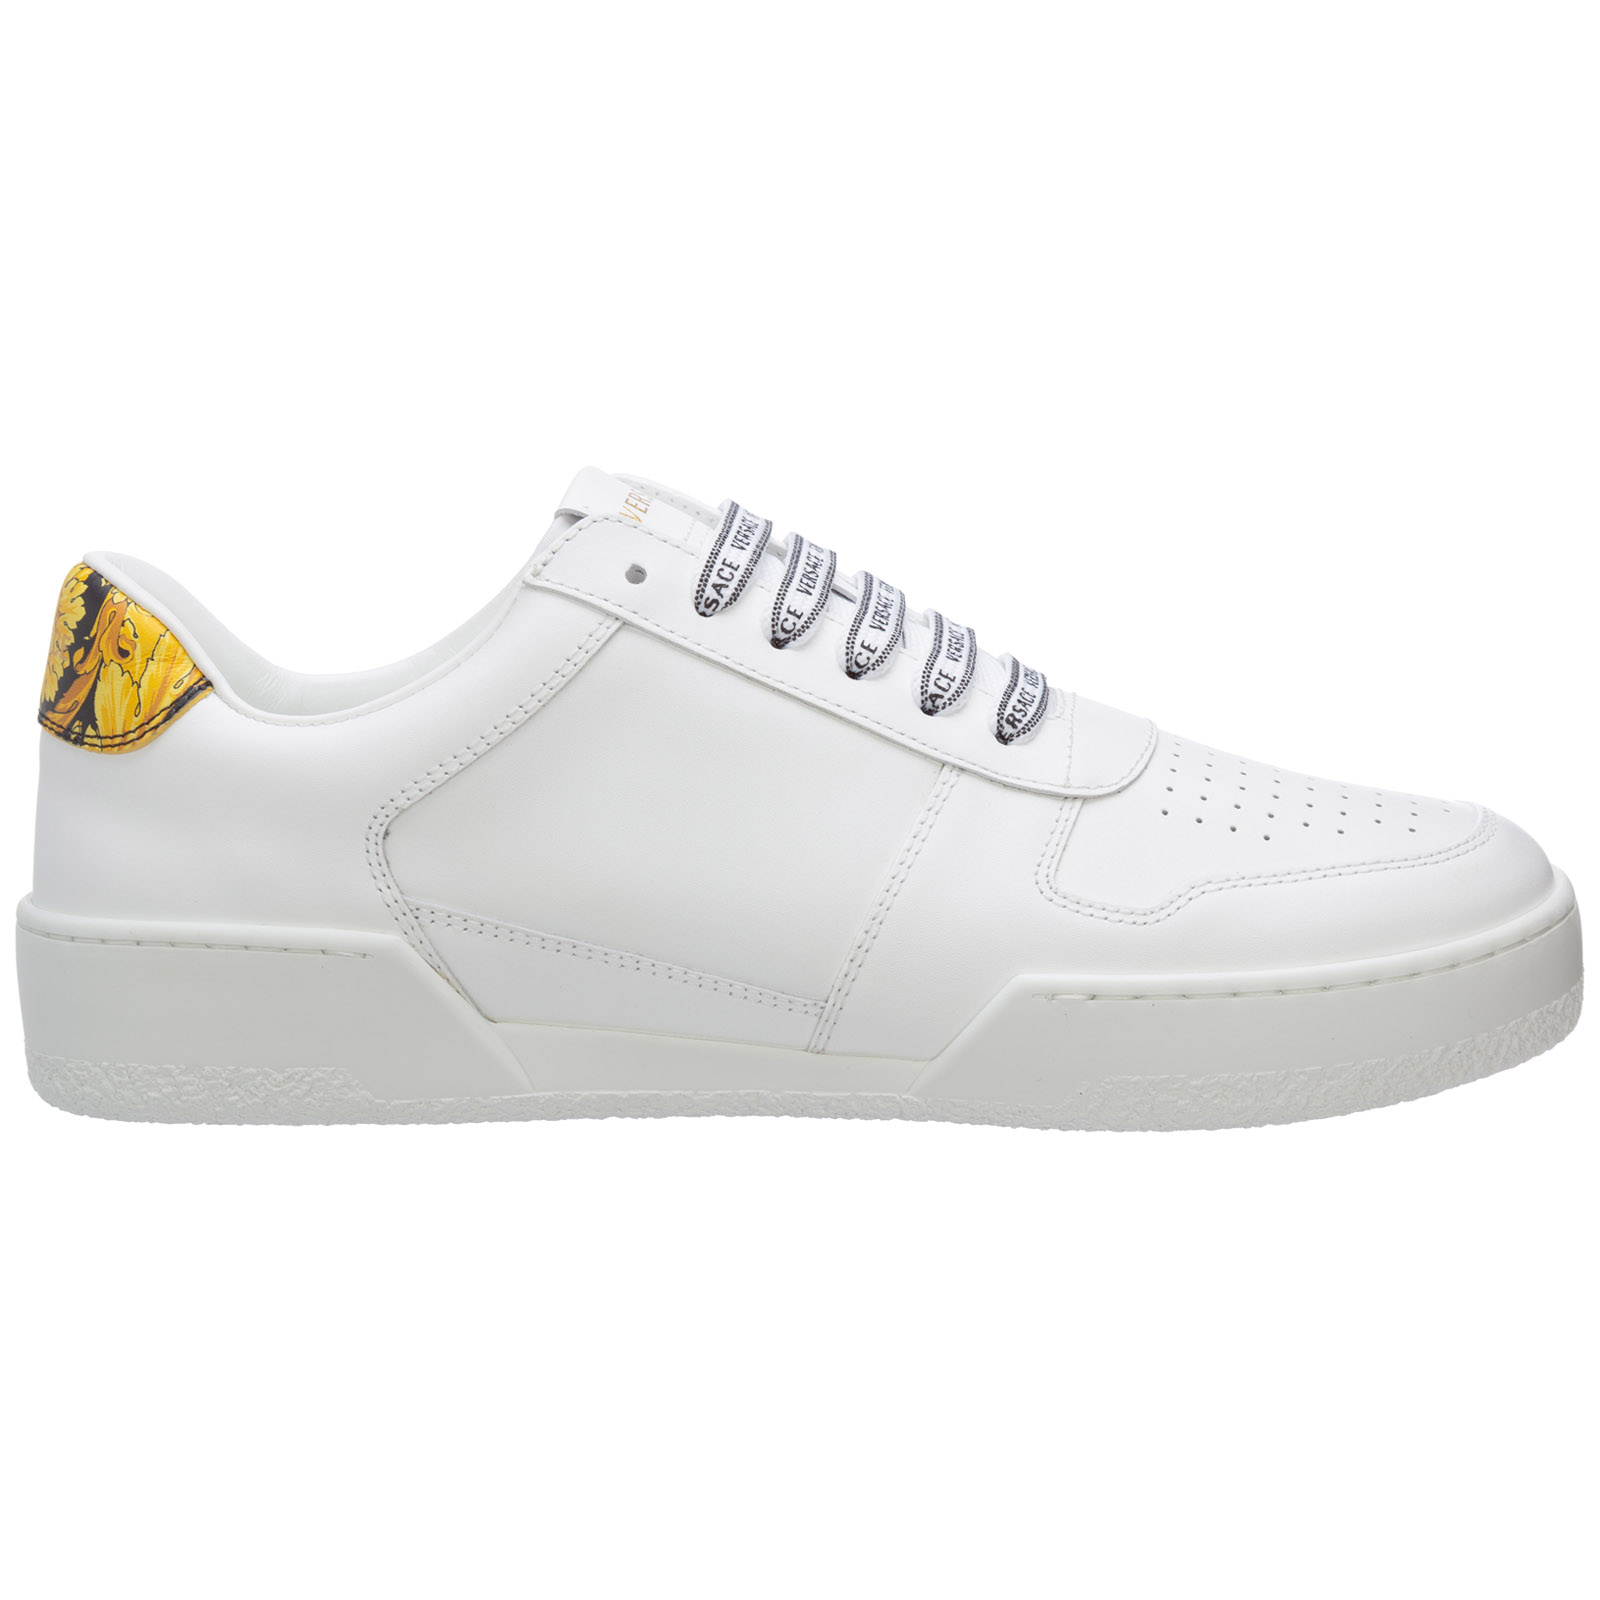 Versace MEN'S SHOES LEATHER TRAINERS SNEAKERS ILUS